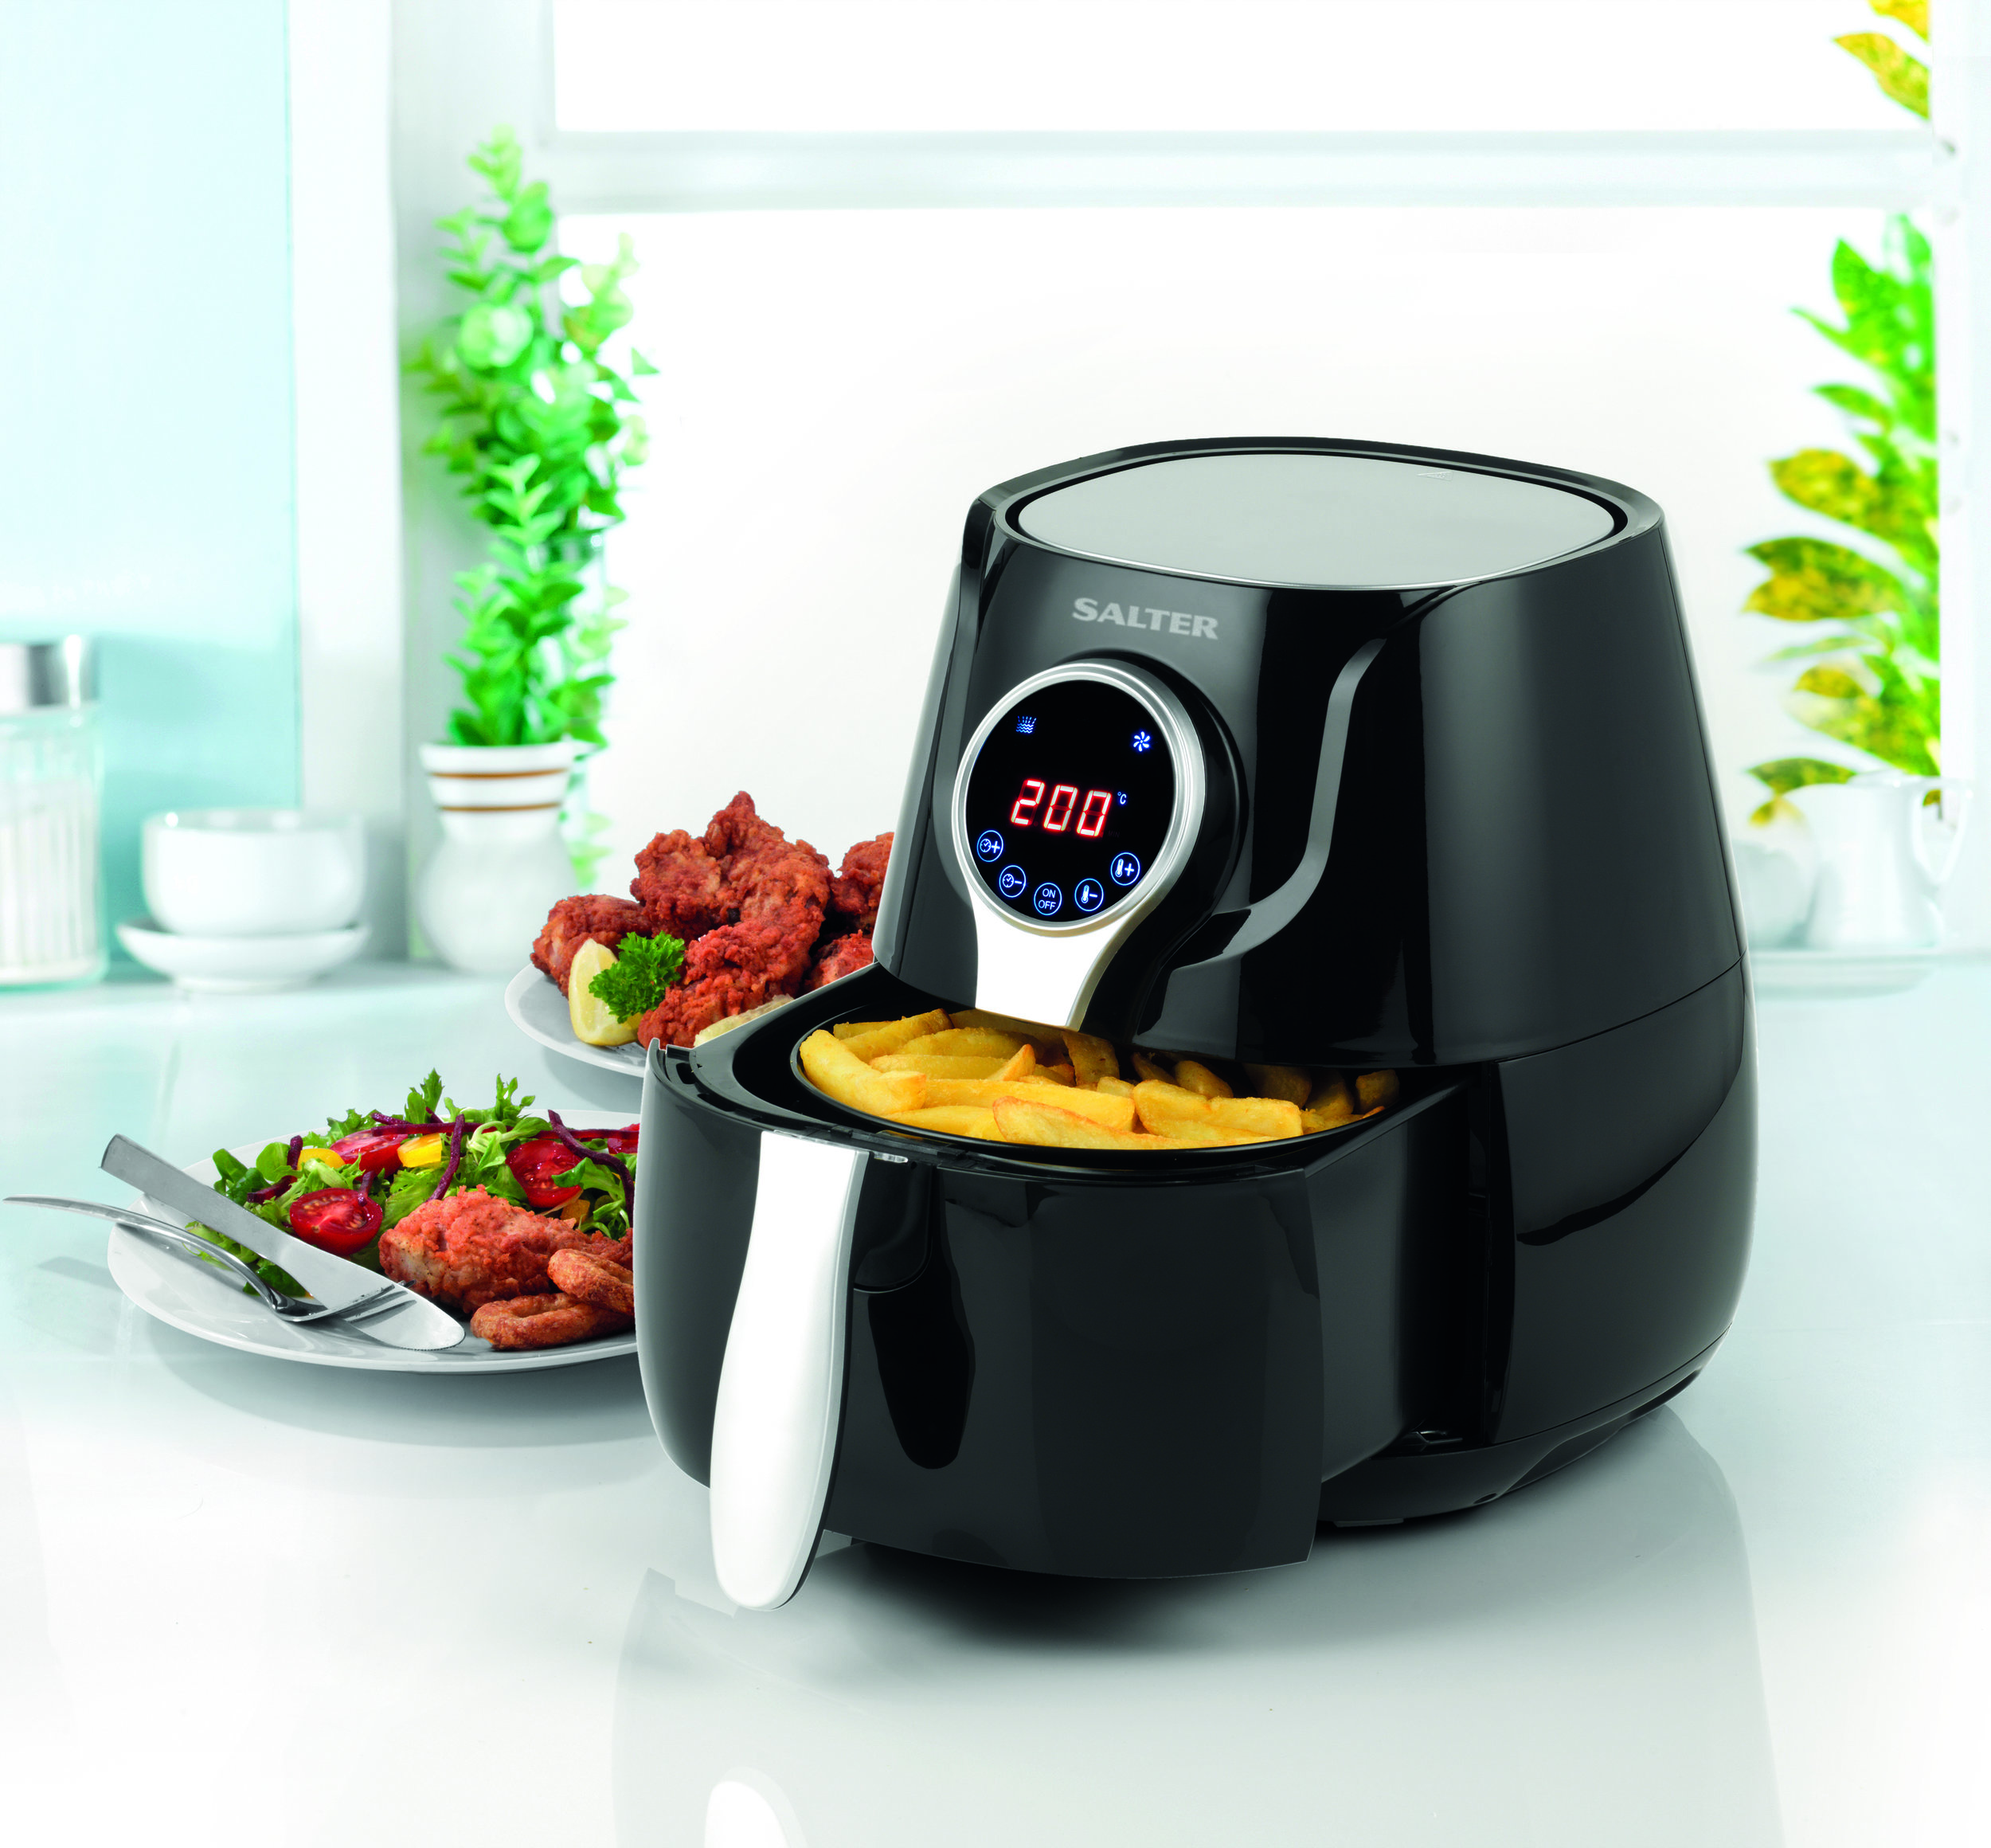 Rating: 4/5 Stars ****  Salter EK2205 Healthy Digital Hot Air Fryer, 4.5 Litre, 1400 W, Black, £65.99 available from  Amazon